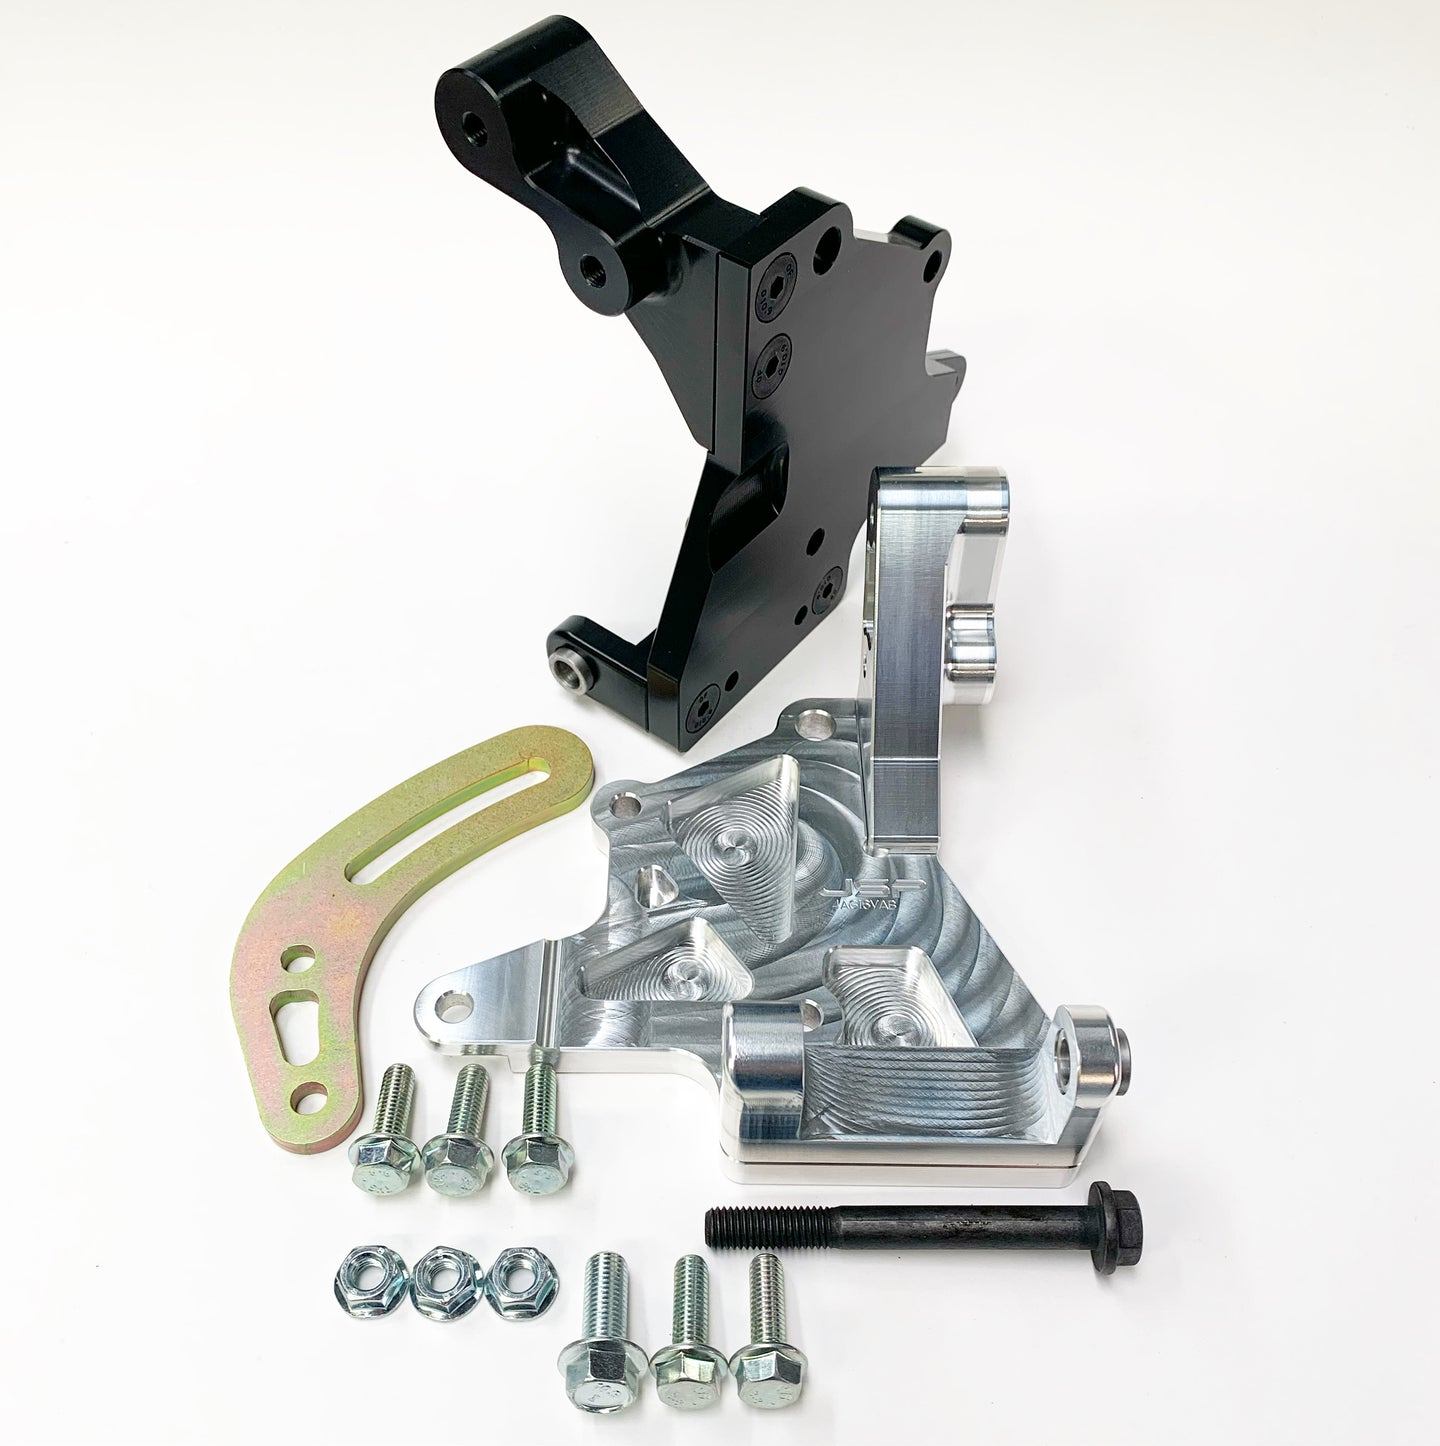 JSP Billet 4AG 16V Alternator Bracket